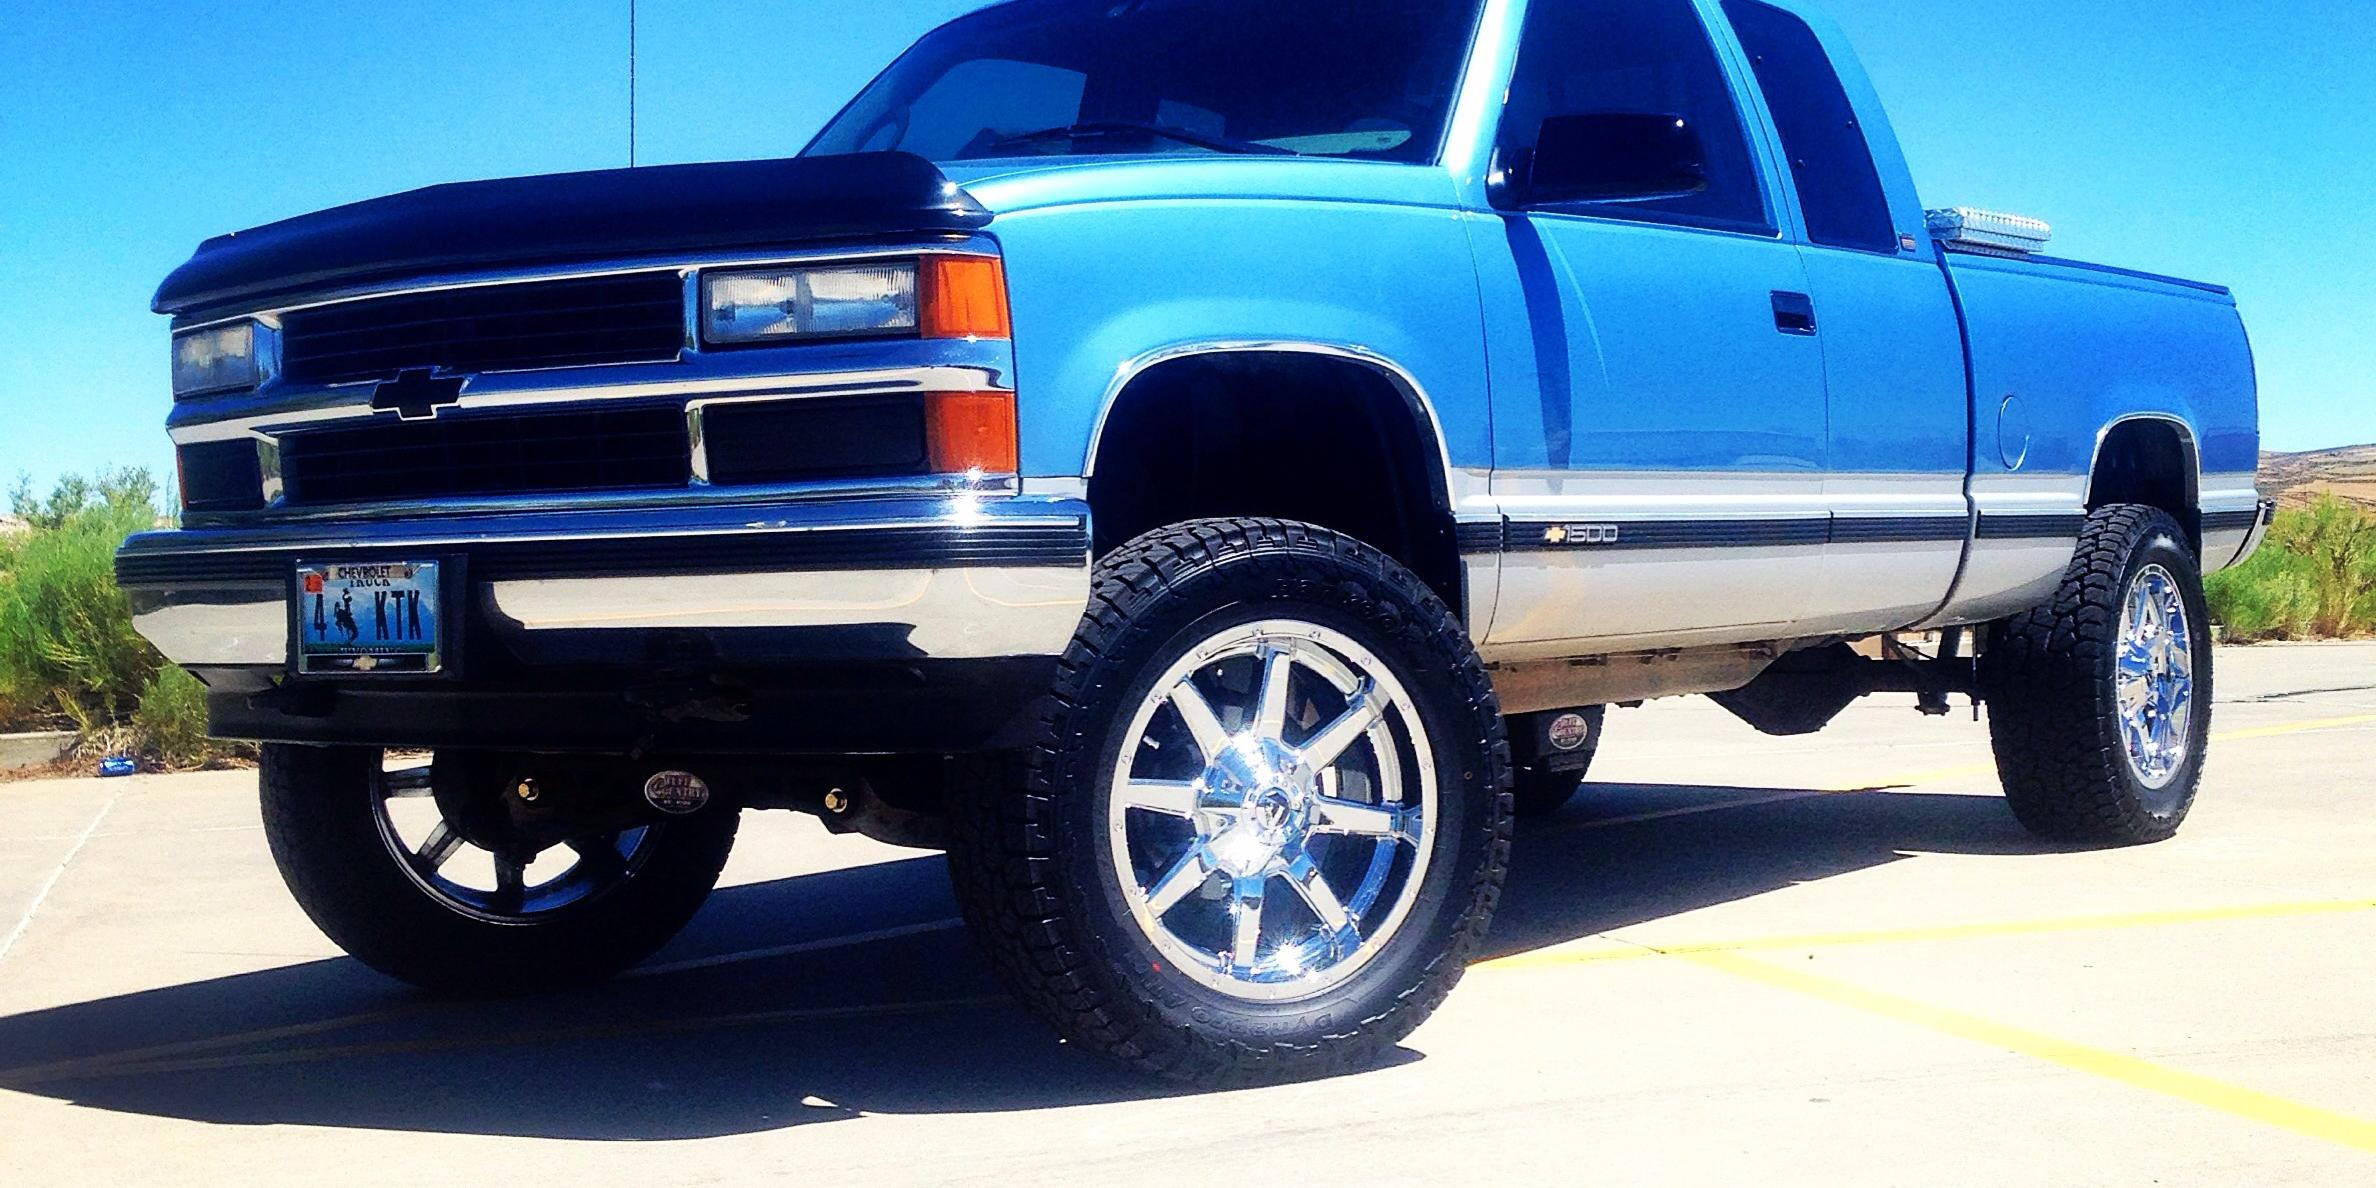 2002 Chevy Silverado Extended Cab For Sale